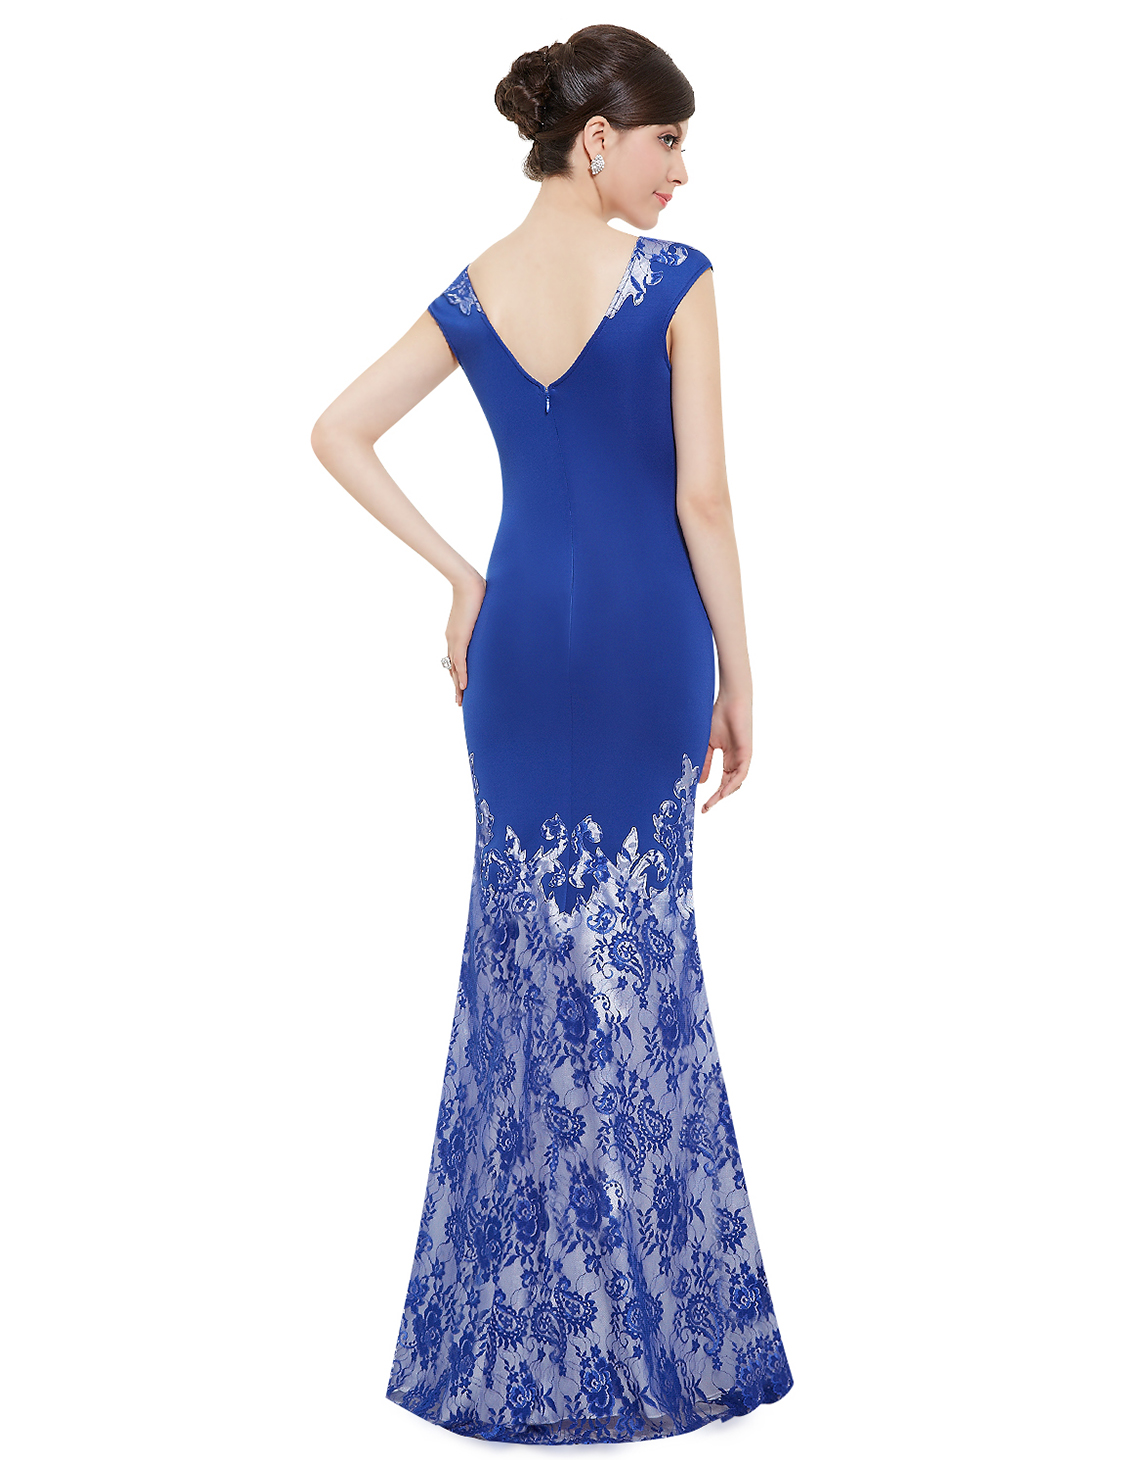 Perfect Off To An Evening Event Or Wedding But Not Sure What To Wear? With Everything From Premium Embellished Pieces To Classic Cocktail Styles, Browse This Stunning Collection Of Occasion Dresses And Partywear Inspiration At Next Got The Perfect